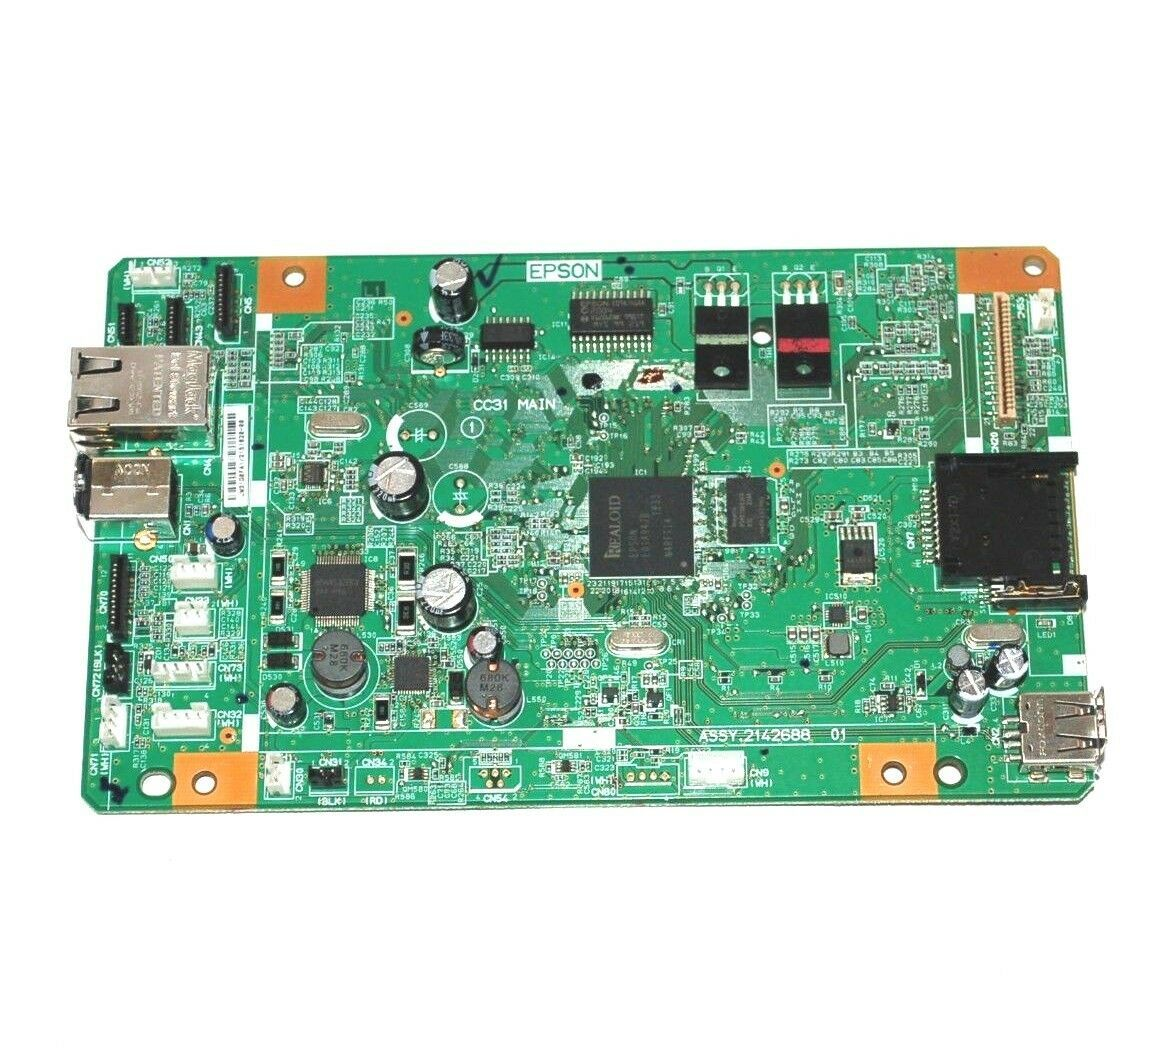 Primary image for Epson WorkForce WF-3520 Printer Logic Board Main Formatter